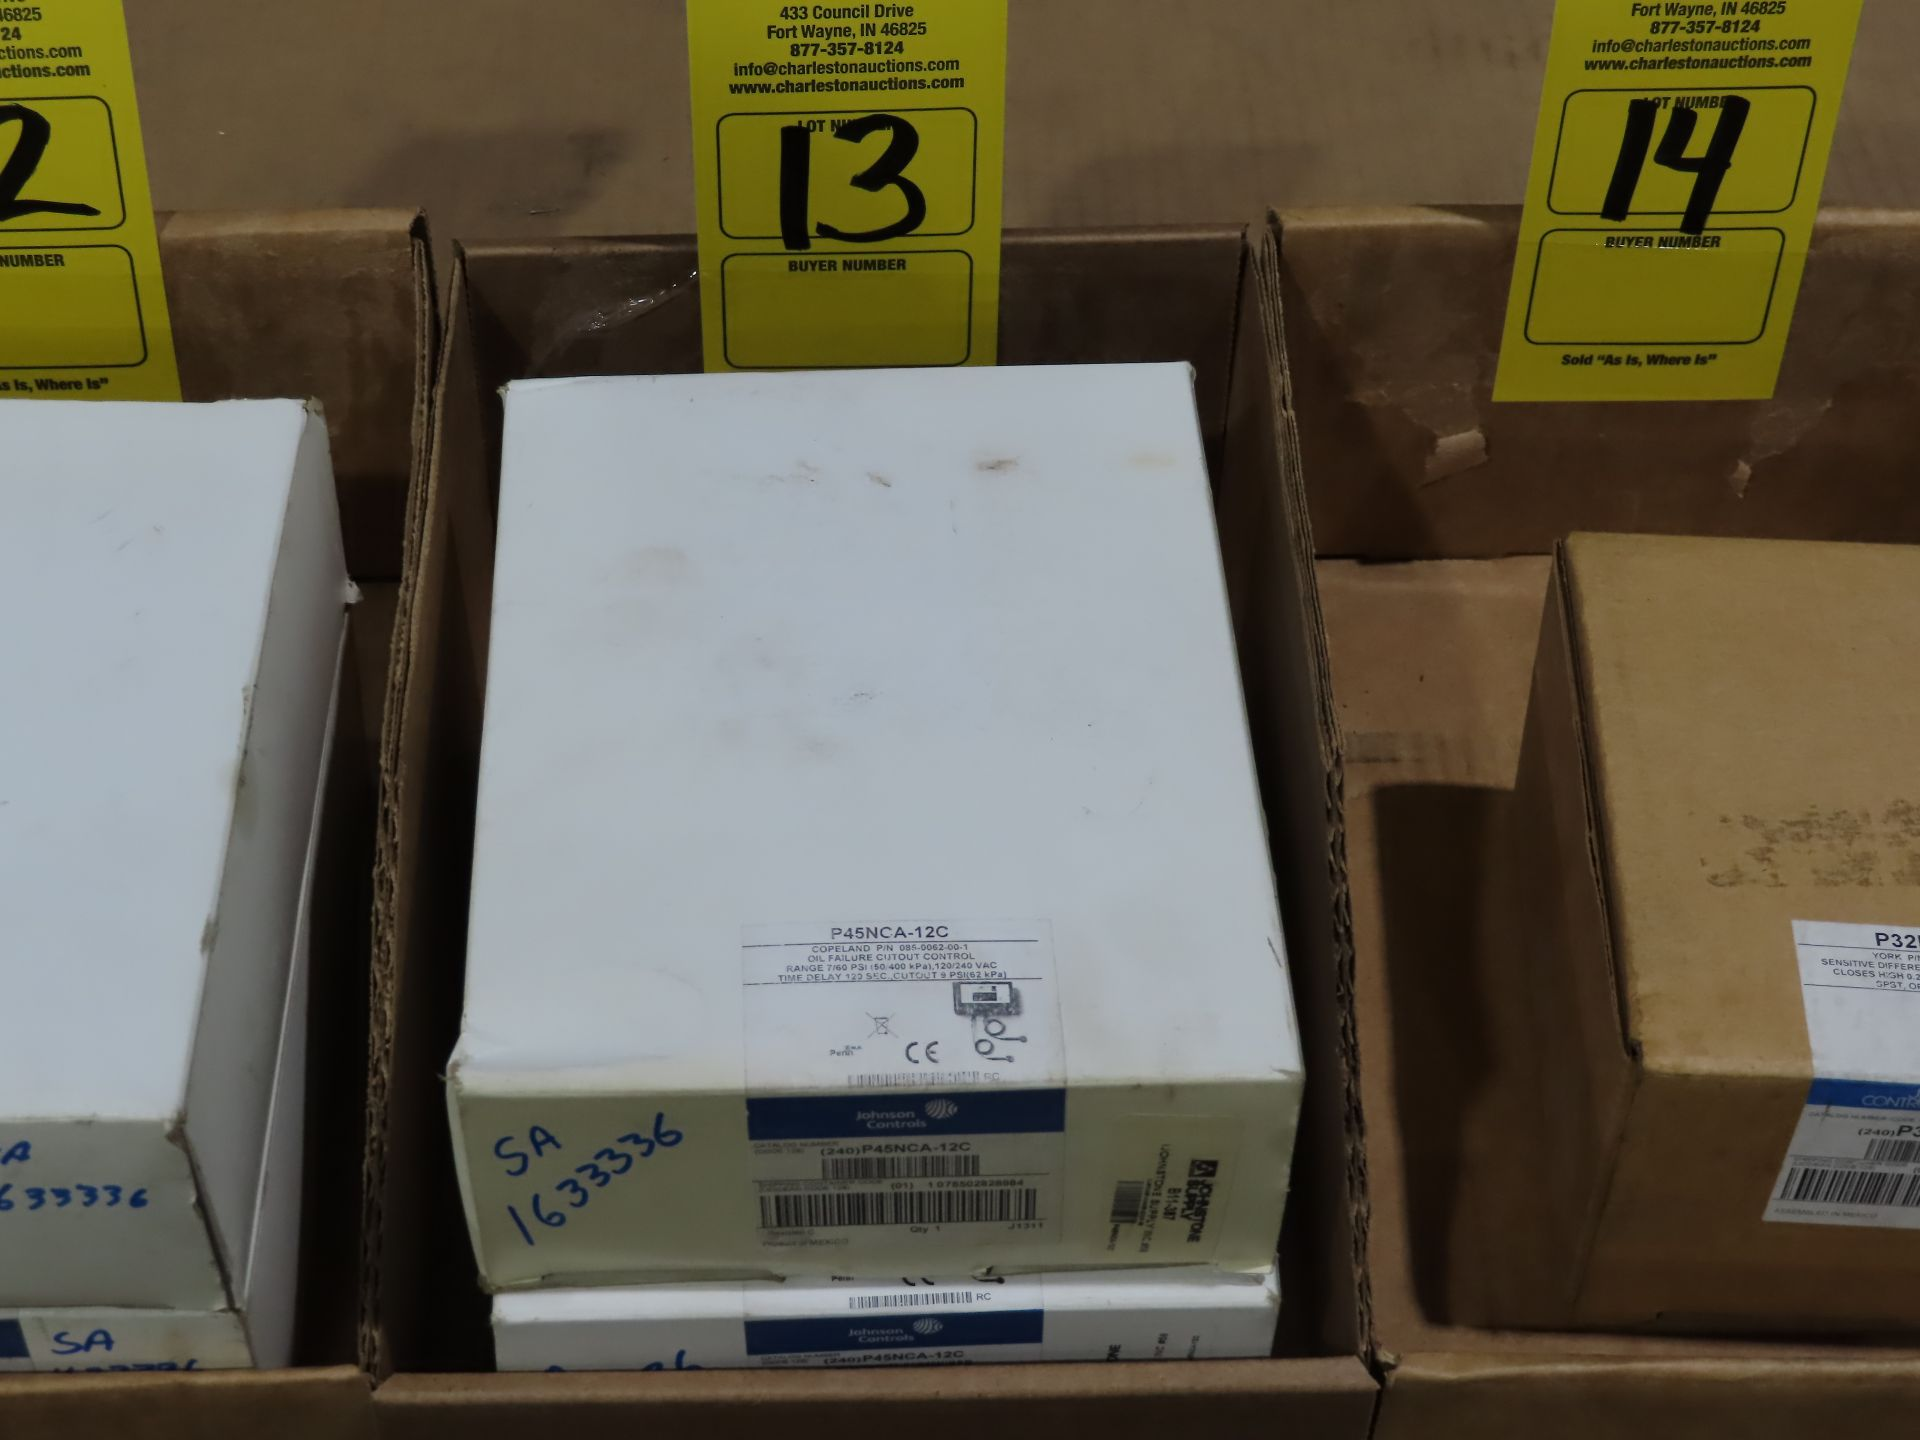 Lot 13 - Qty 2 Johnson Controls model P45NCA-12C, new in boxes, as always, with Brolyn LLC auctions, all lots